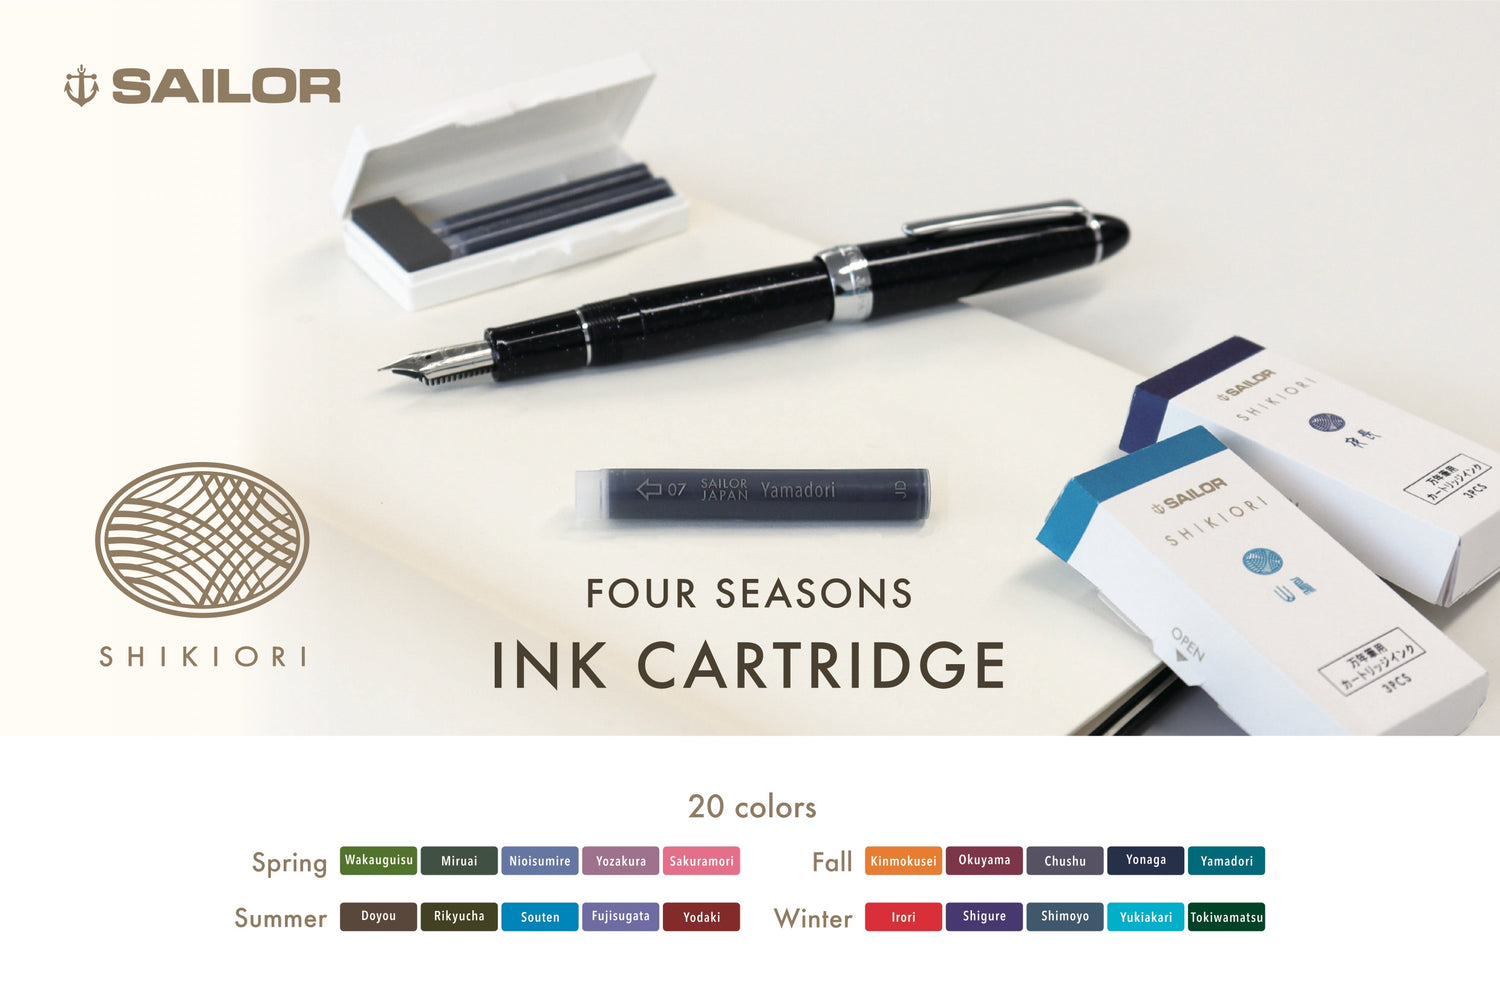 Sailor Shikiori Yamadori - Ink Cartridges